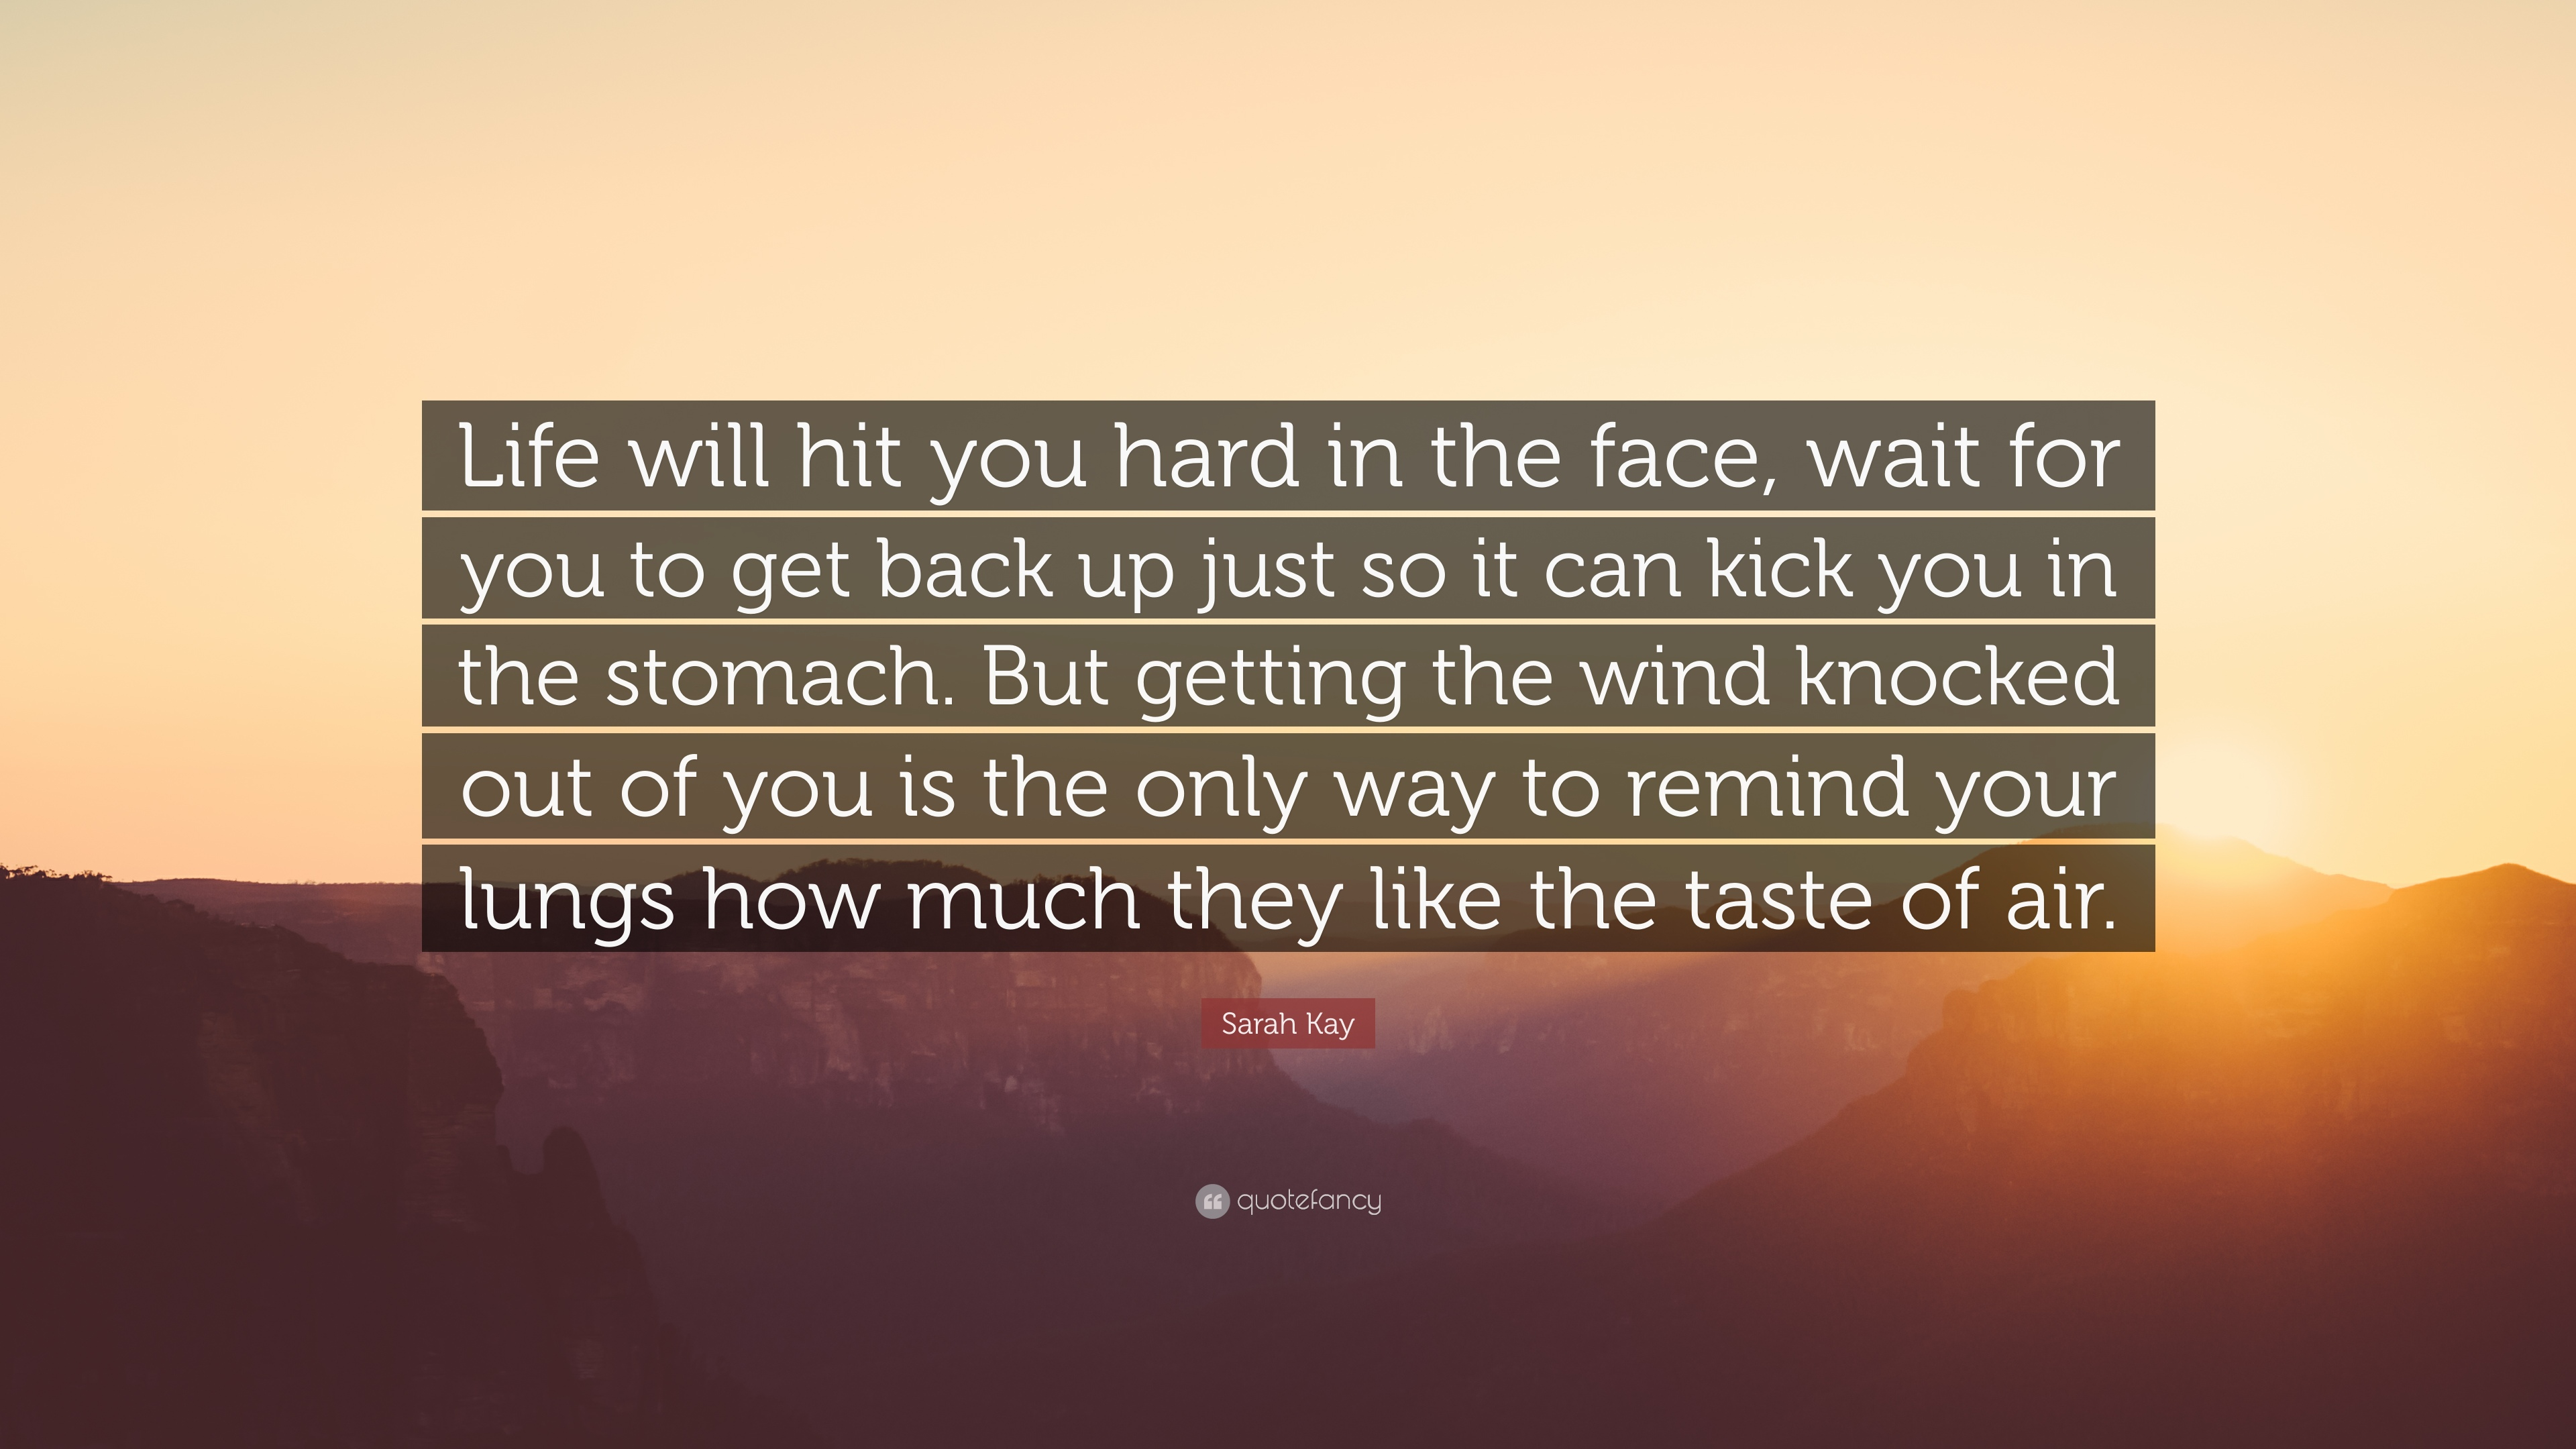 sarah kay quote life will hit you hard in the face wait for you